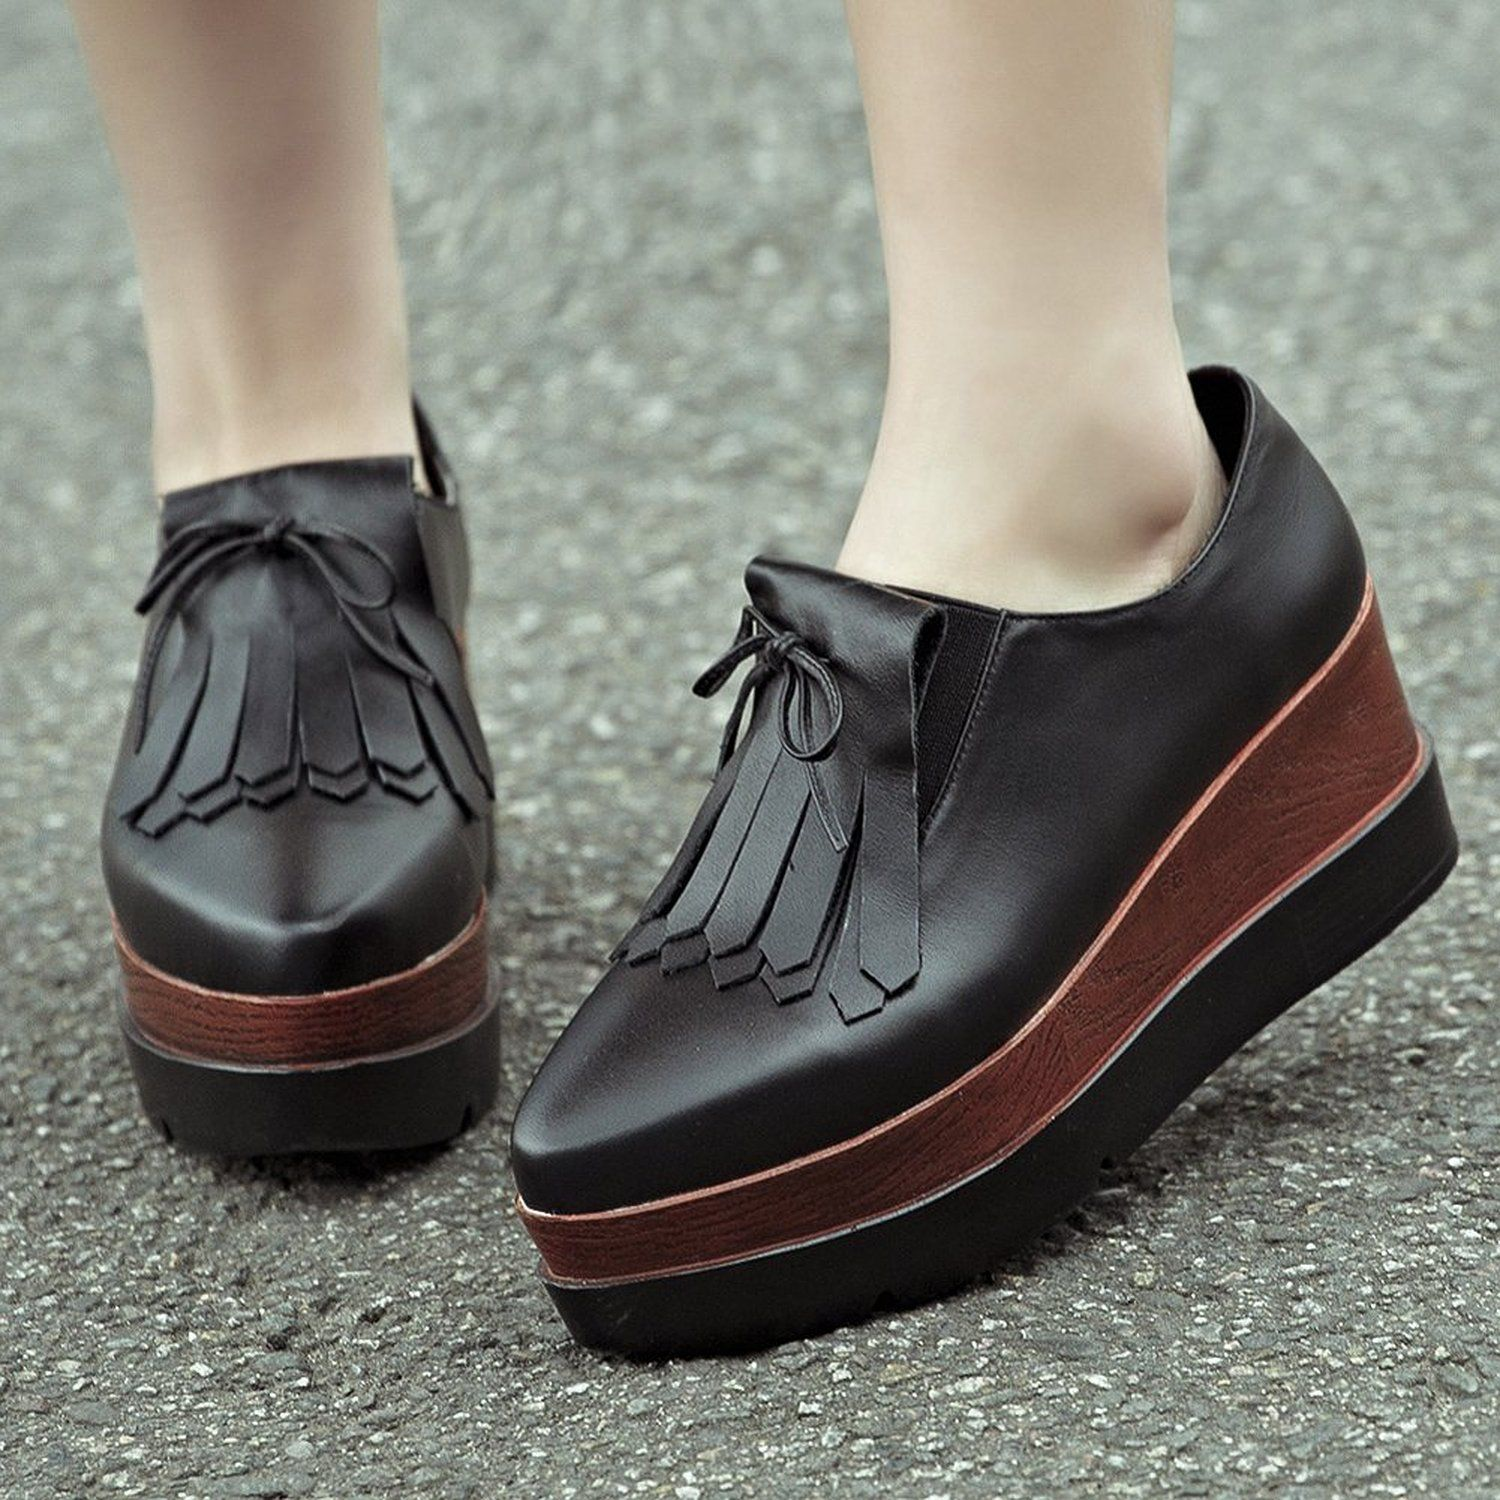 Amazon.com: MINIVOG Thick Treaded Sole Platform Womens Loafer Shoes with  Bows and Tassels